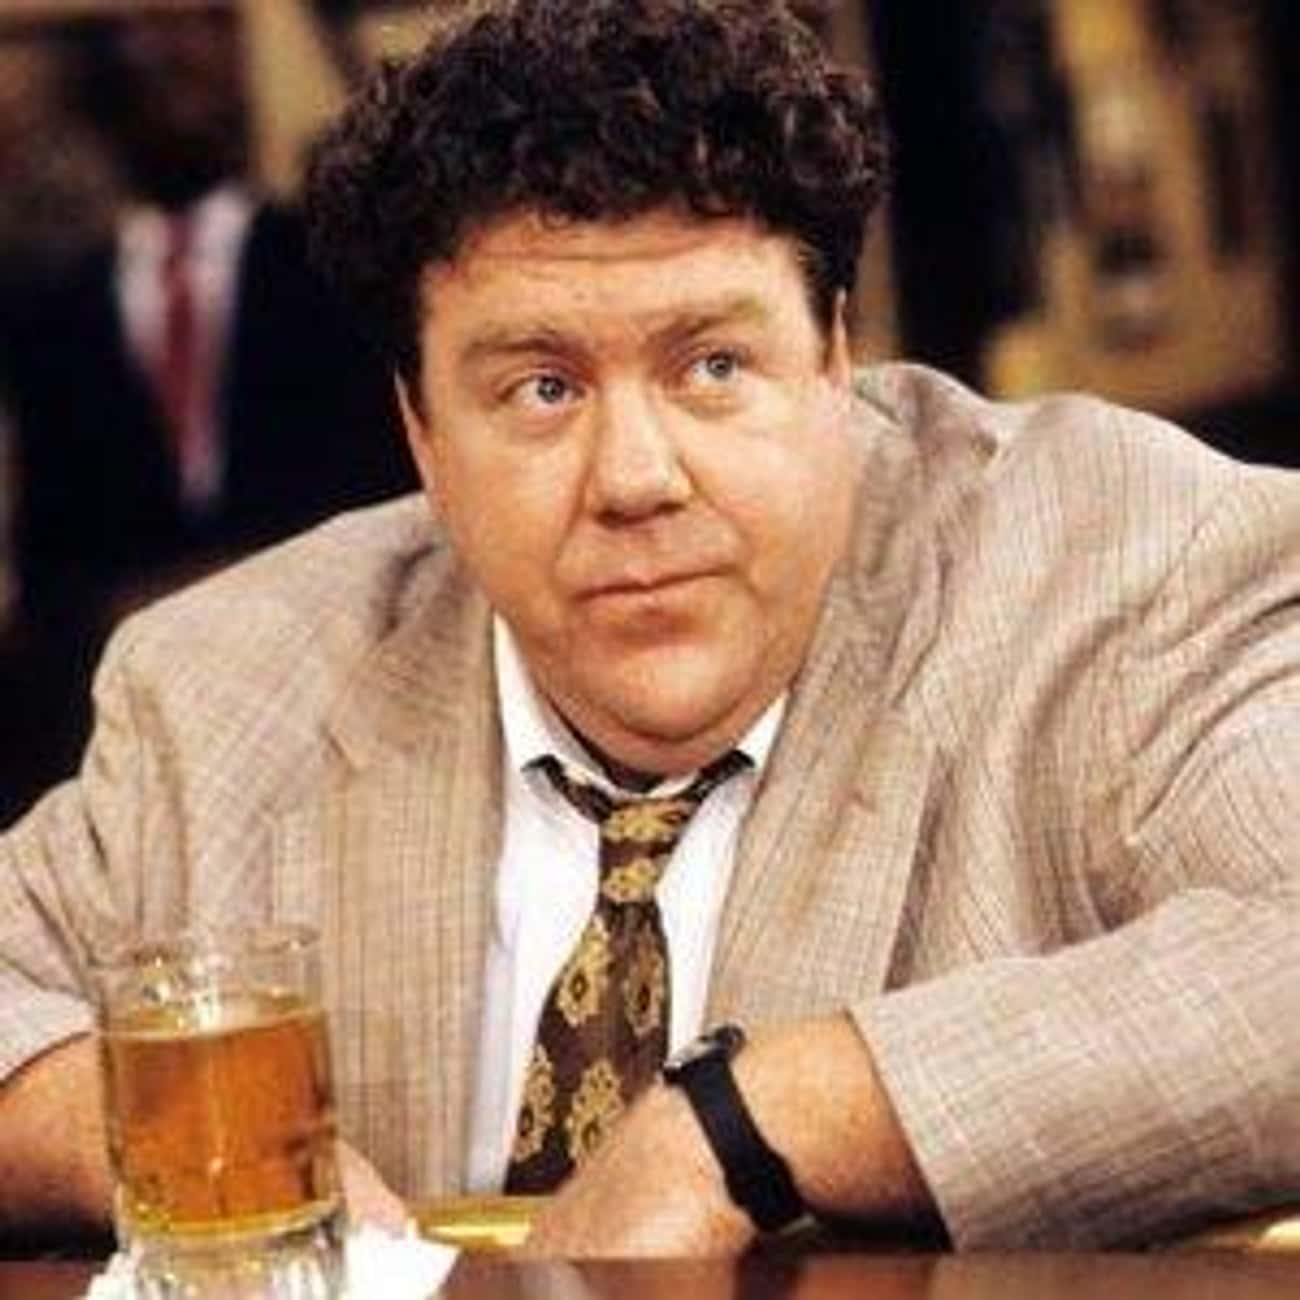 Norm Peterson - Cheers is listed (or ranked) 4 on the list TV Husbands You Never Realized Are Total Pieces Of Crap